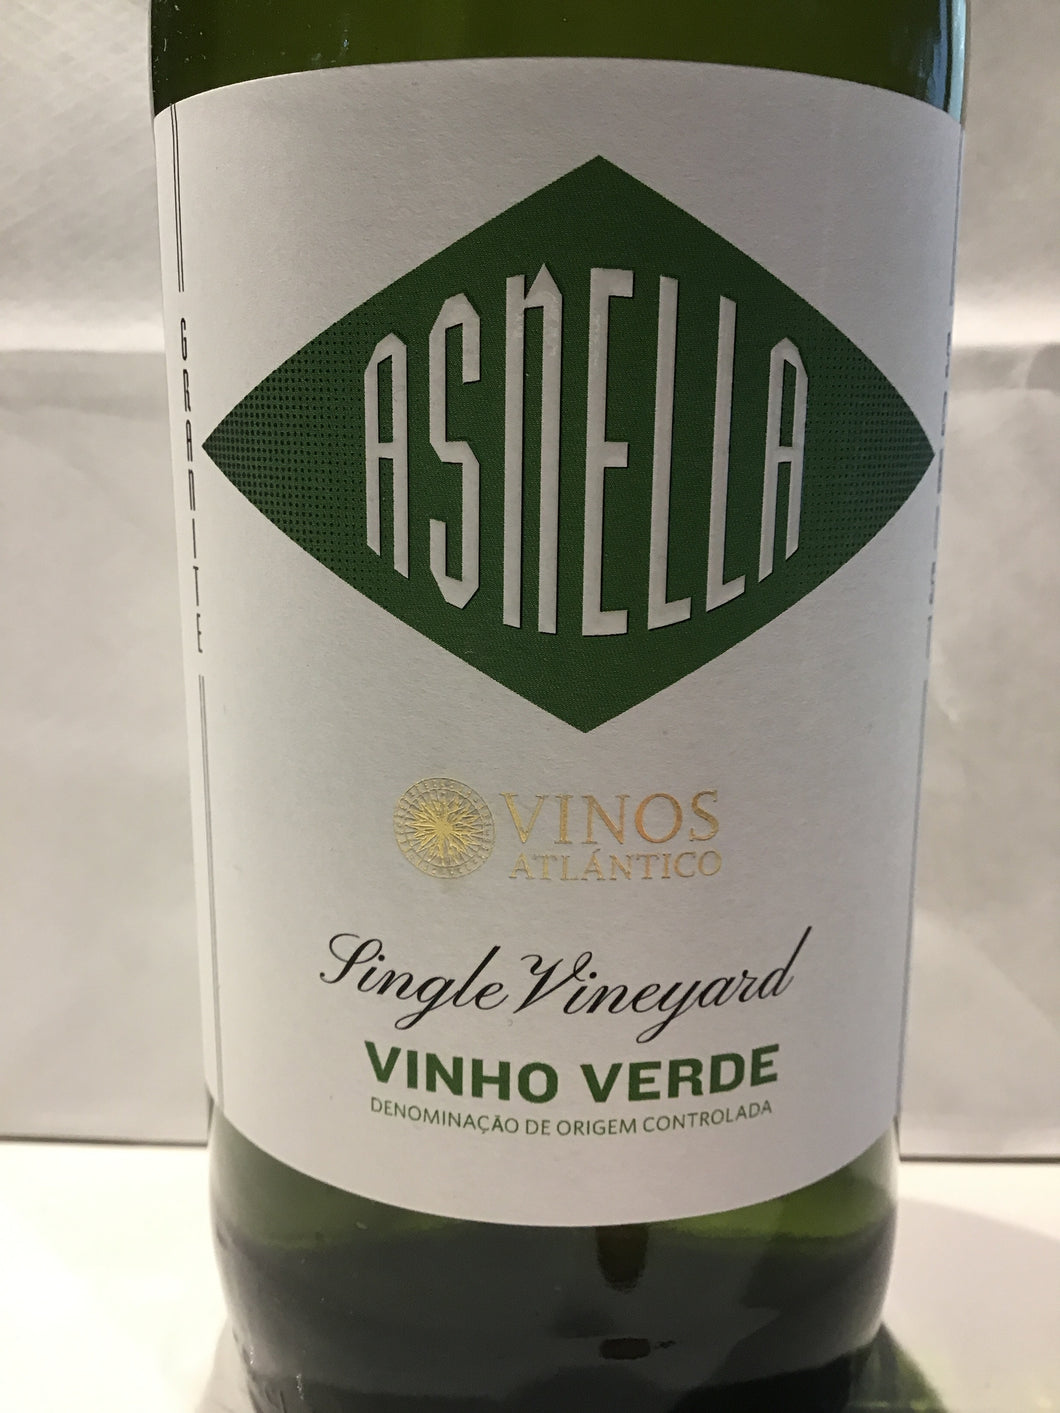 Asnella 'Single Vineyard' - Vinho Verde